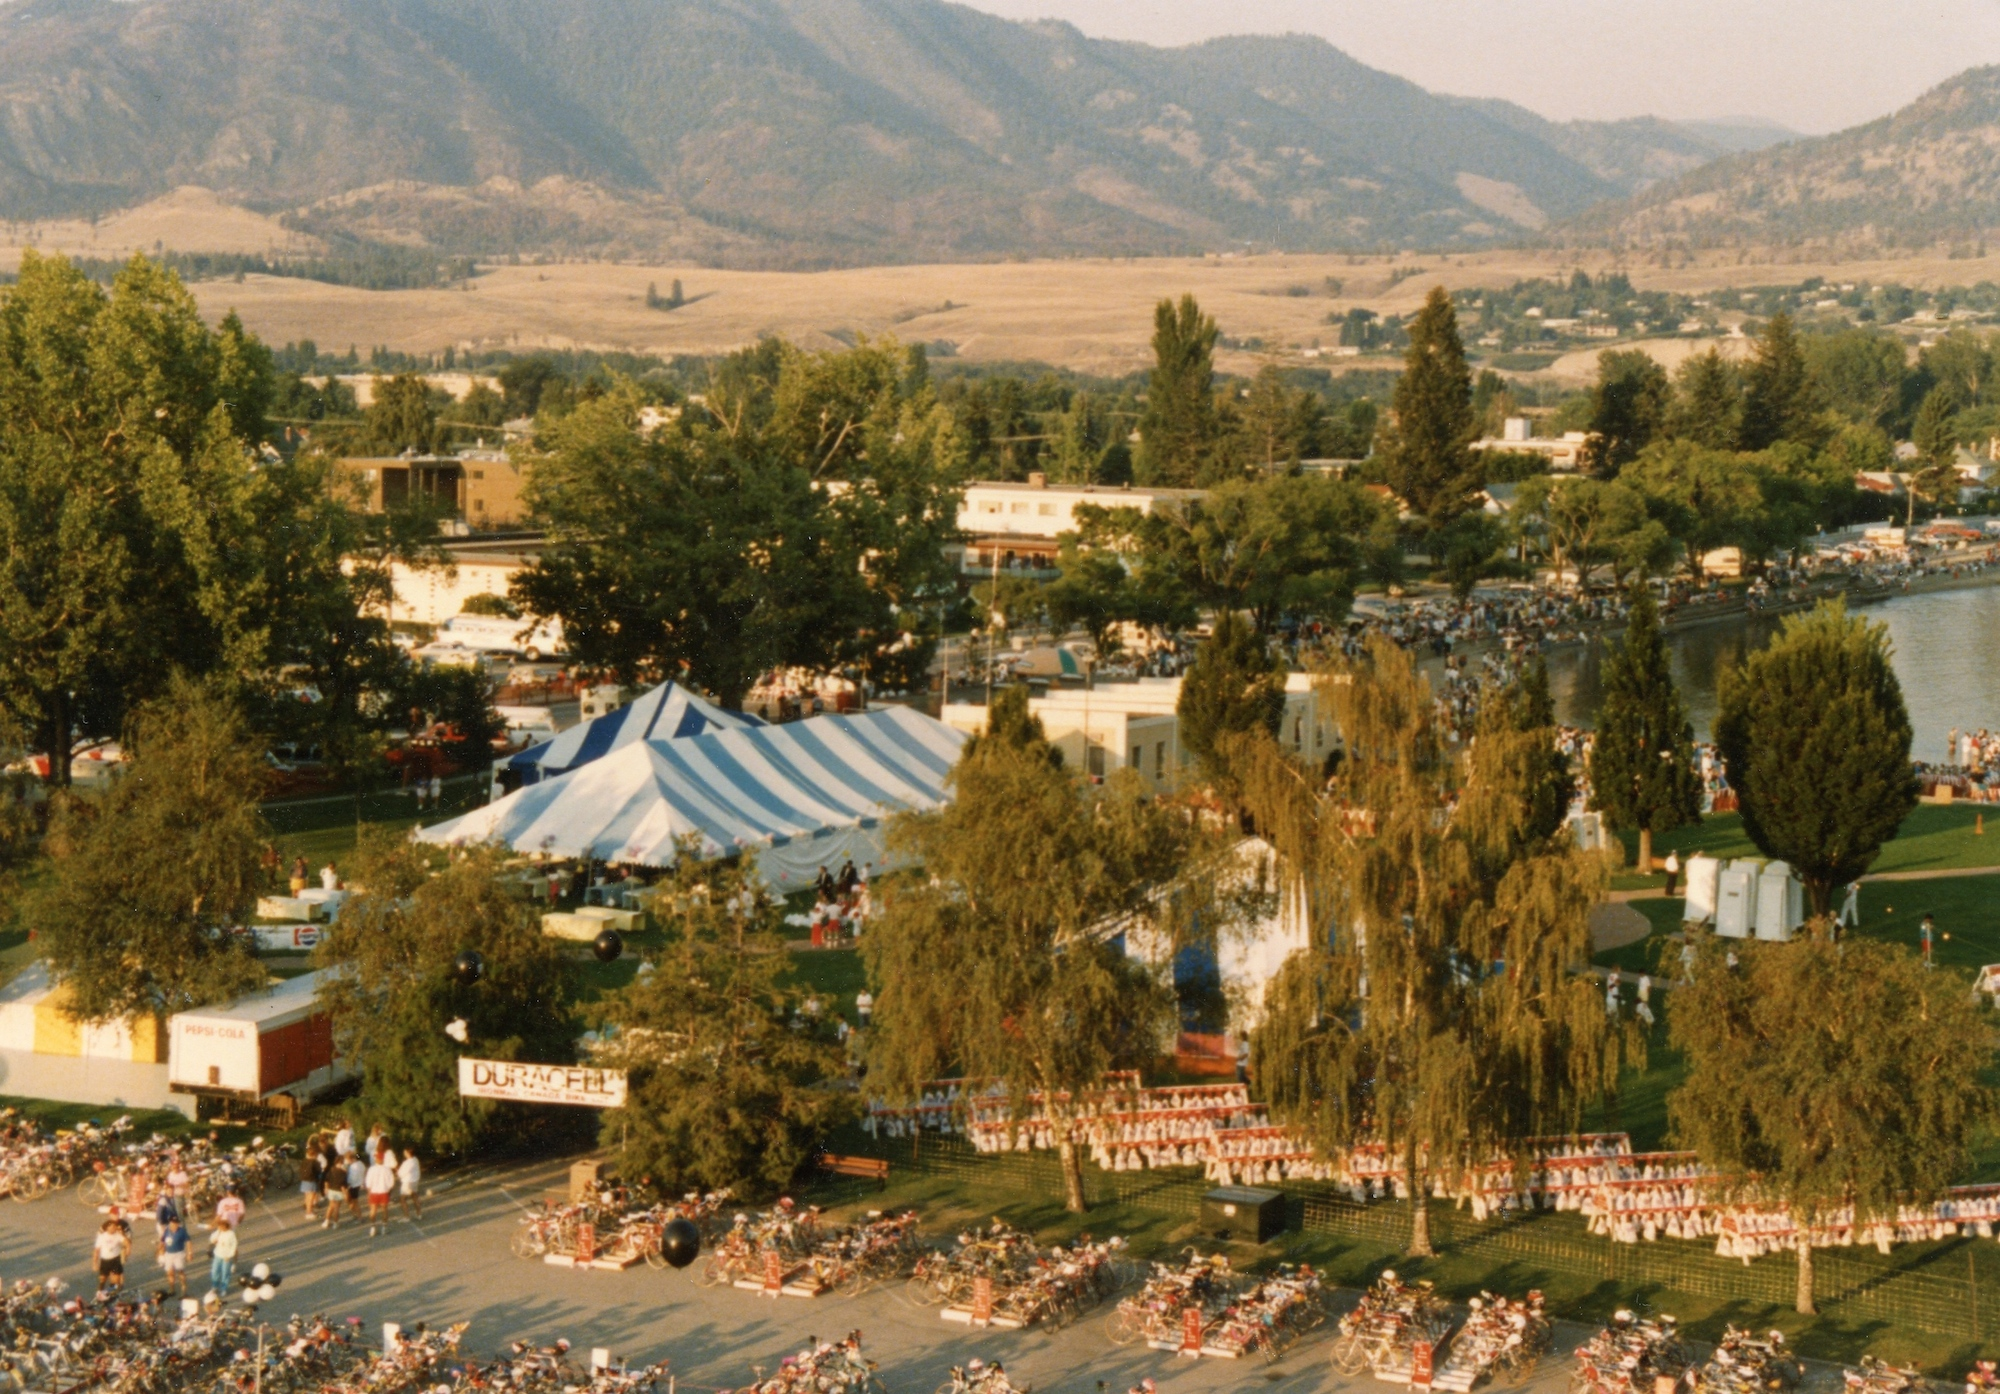 Ironman transition area, 1991, as seen from the top of the Delta Lakeside Resort